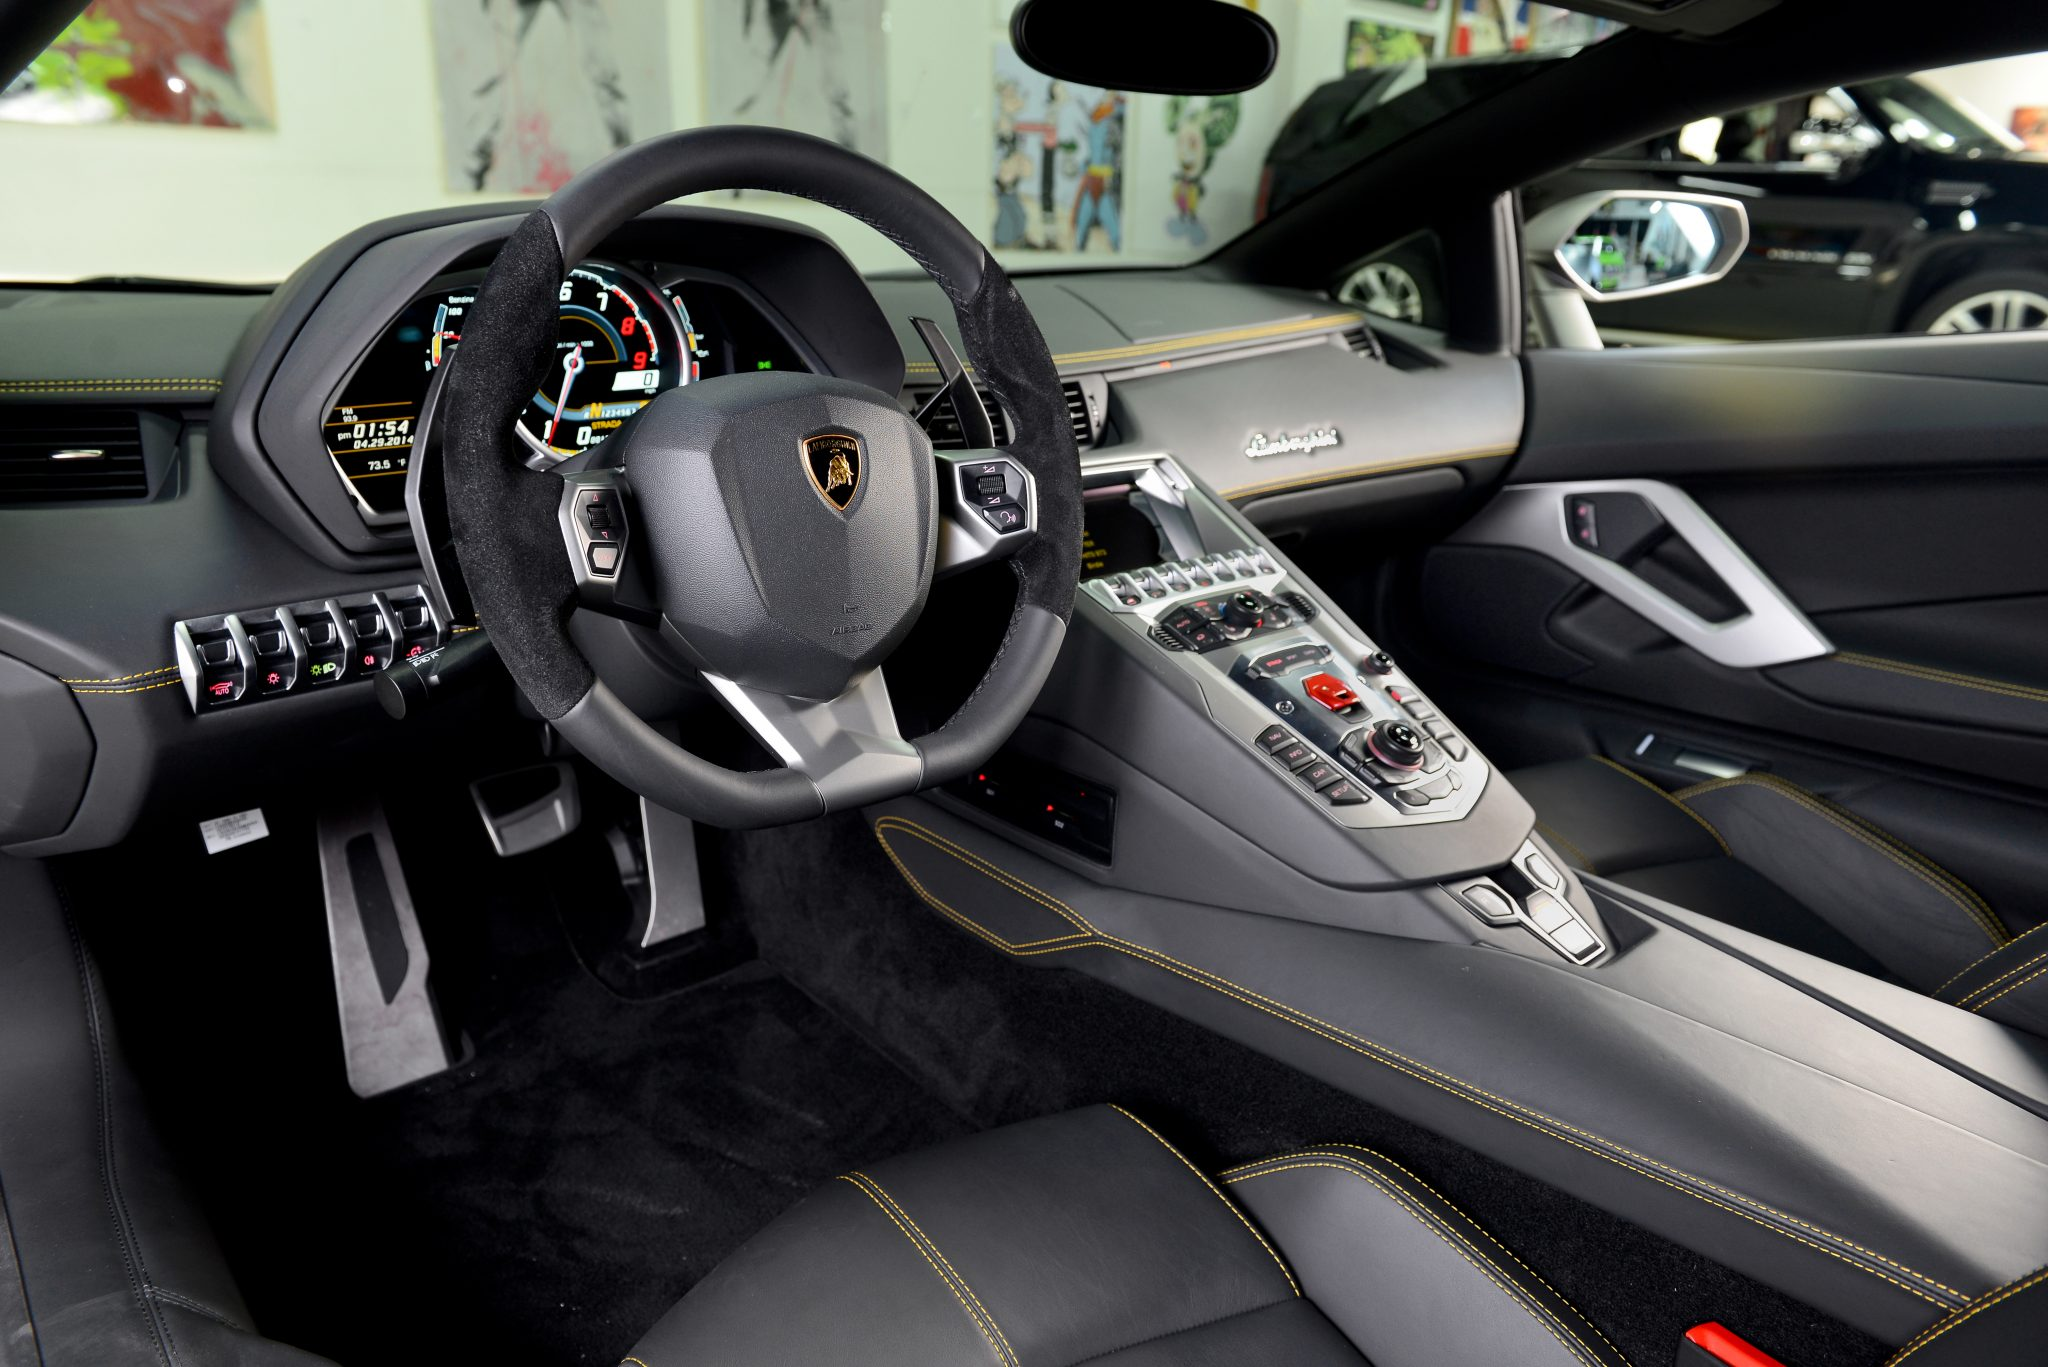 lamborghini aventador interior luxury exotic car rental. Black Bedroom Furniture Sets. Home Design Ideas